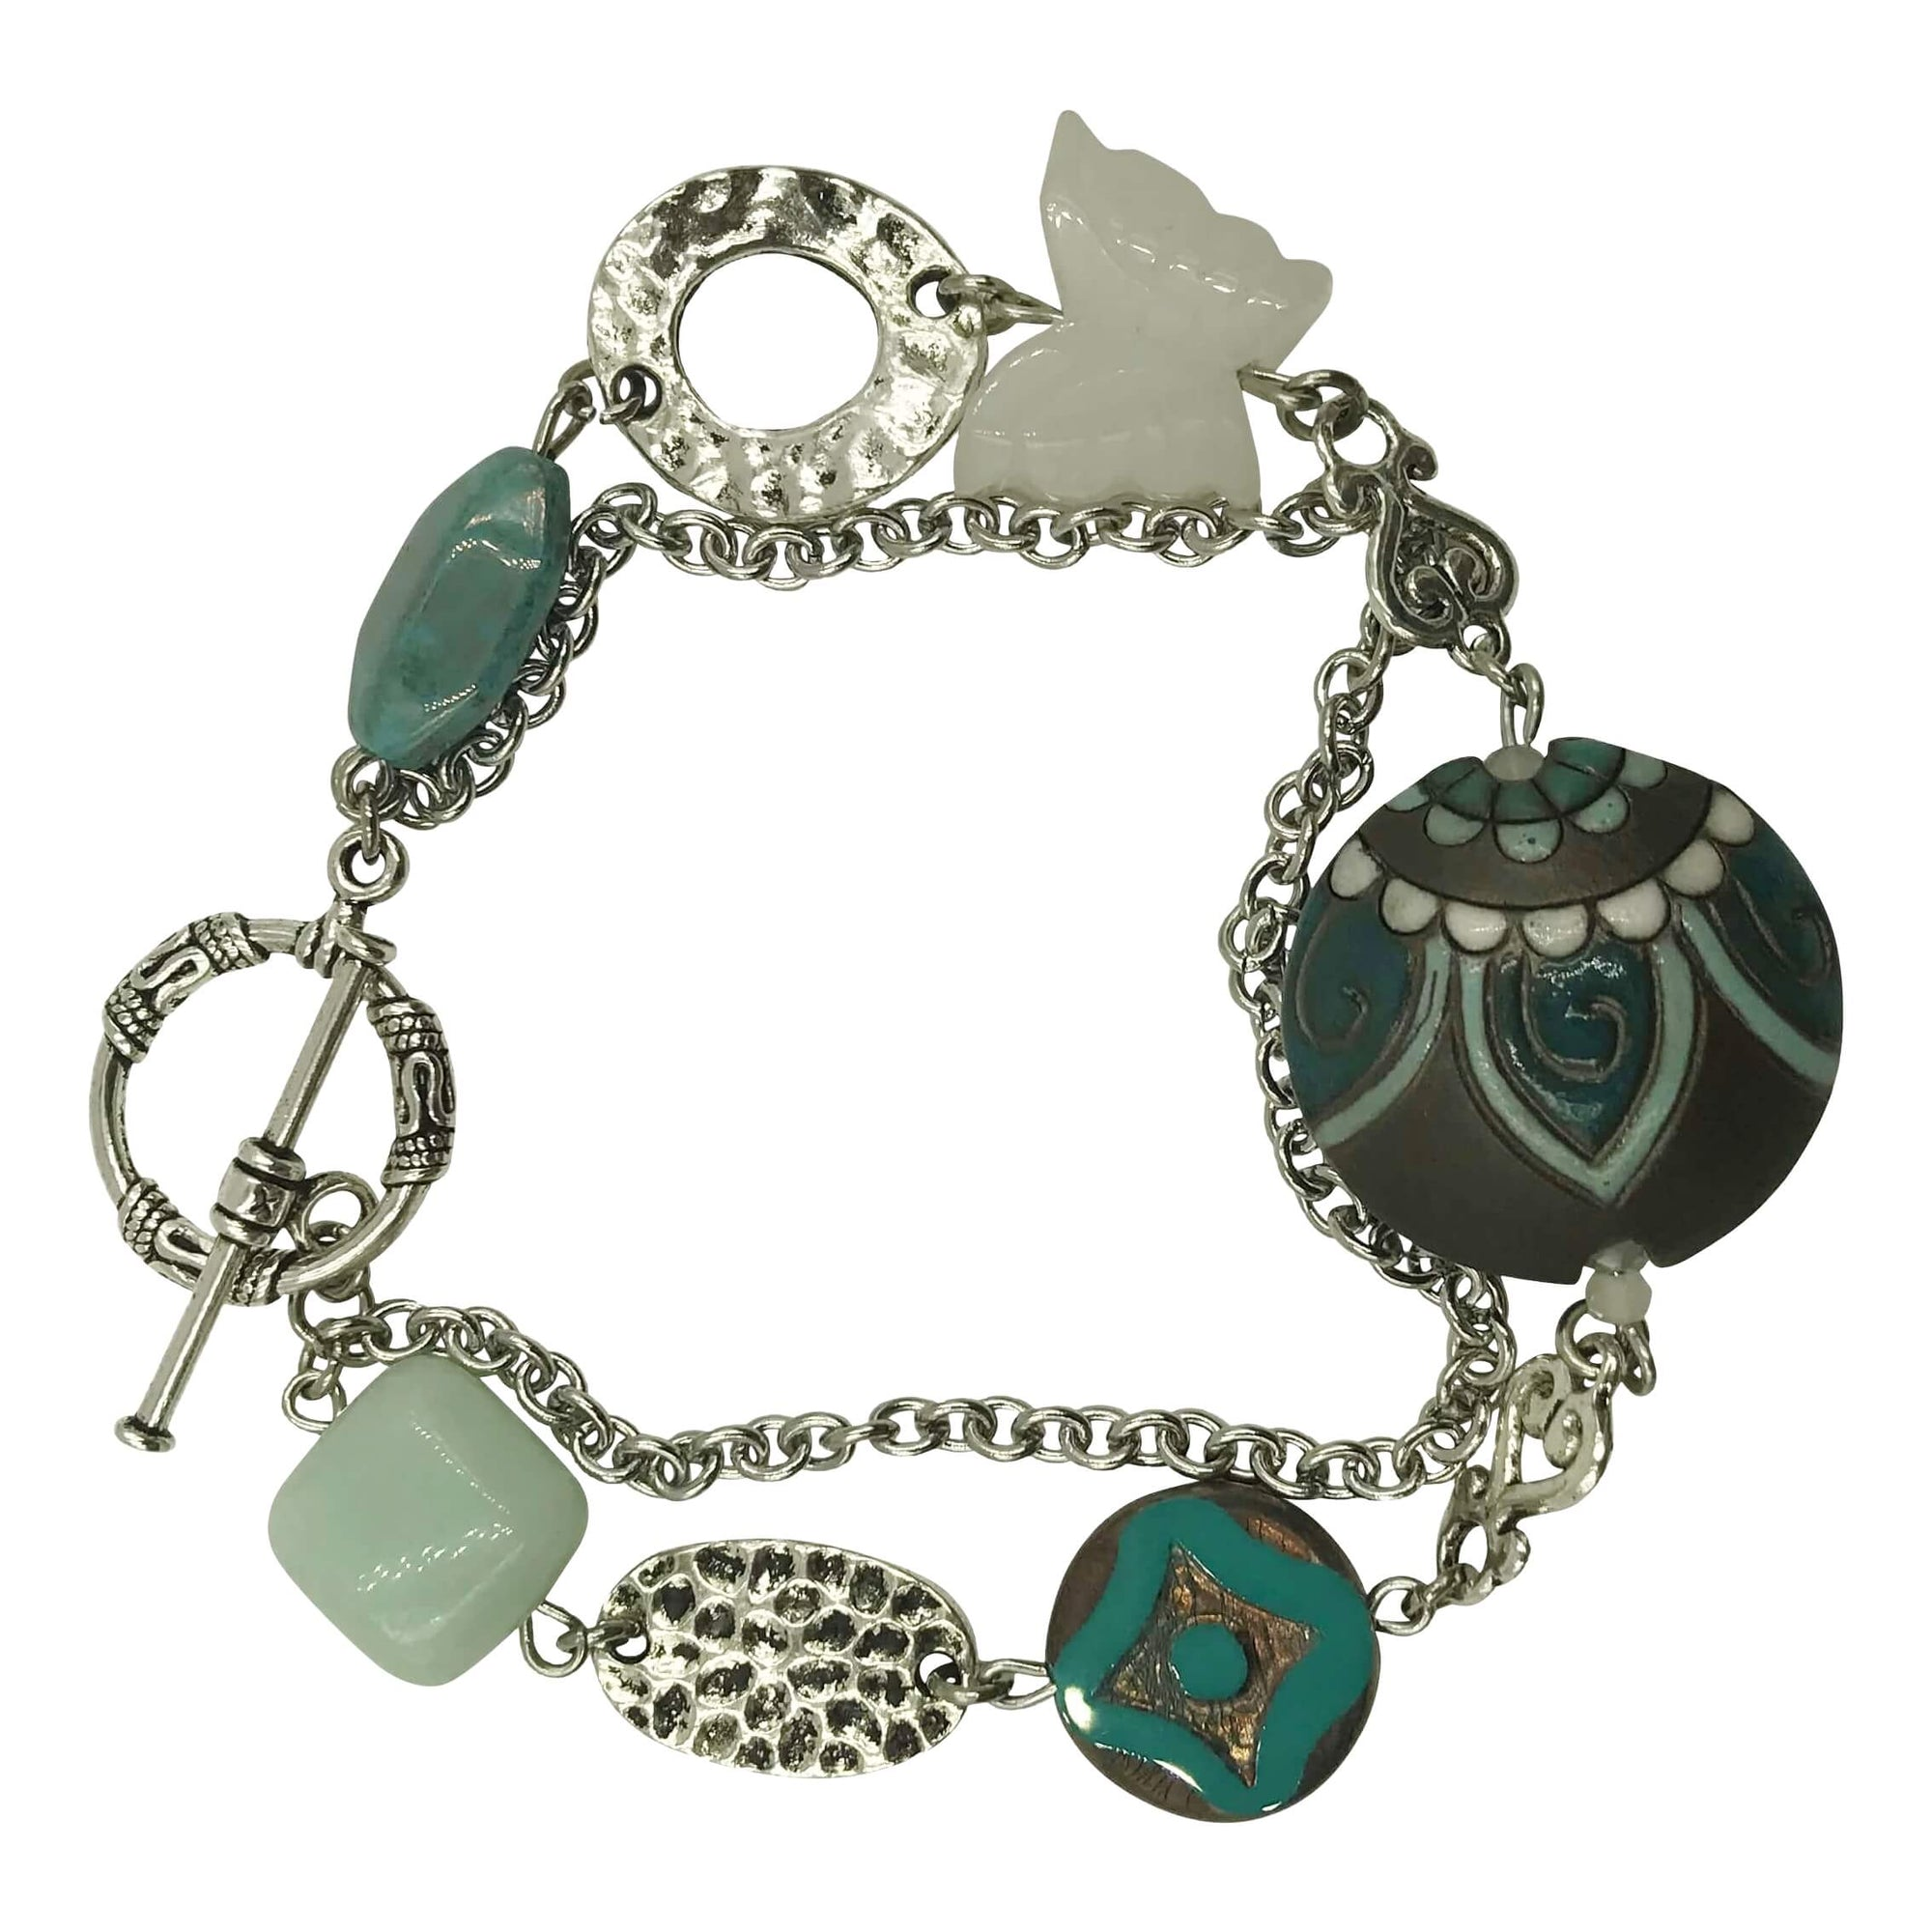 Brown Paisley Print Focal Bracelet with Stainless Steel Chain and Amazonite Stone-Bracelets- Creative Jewelry by Marcia